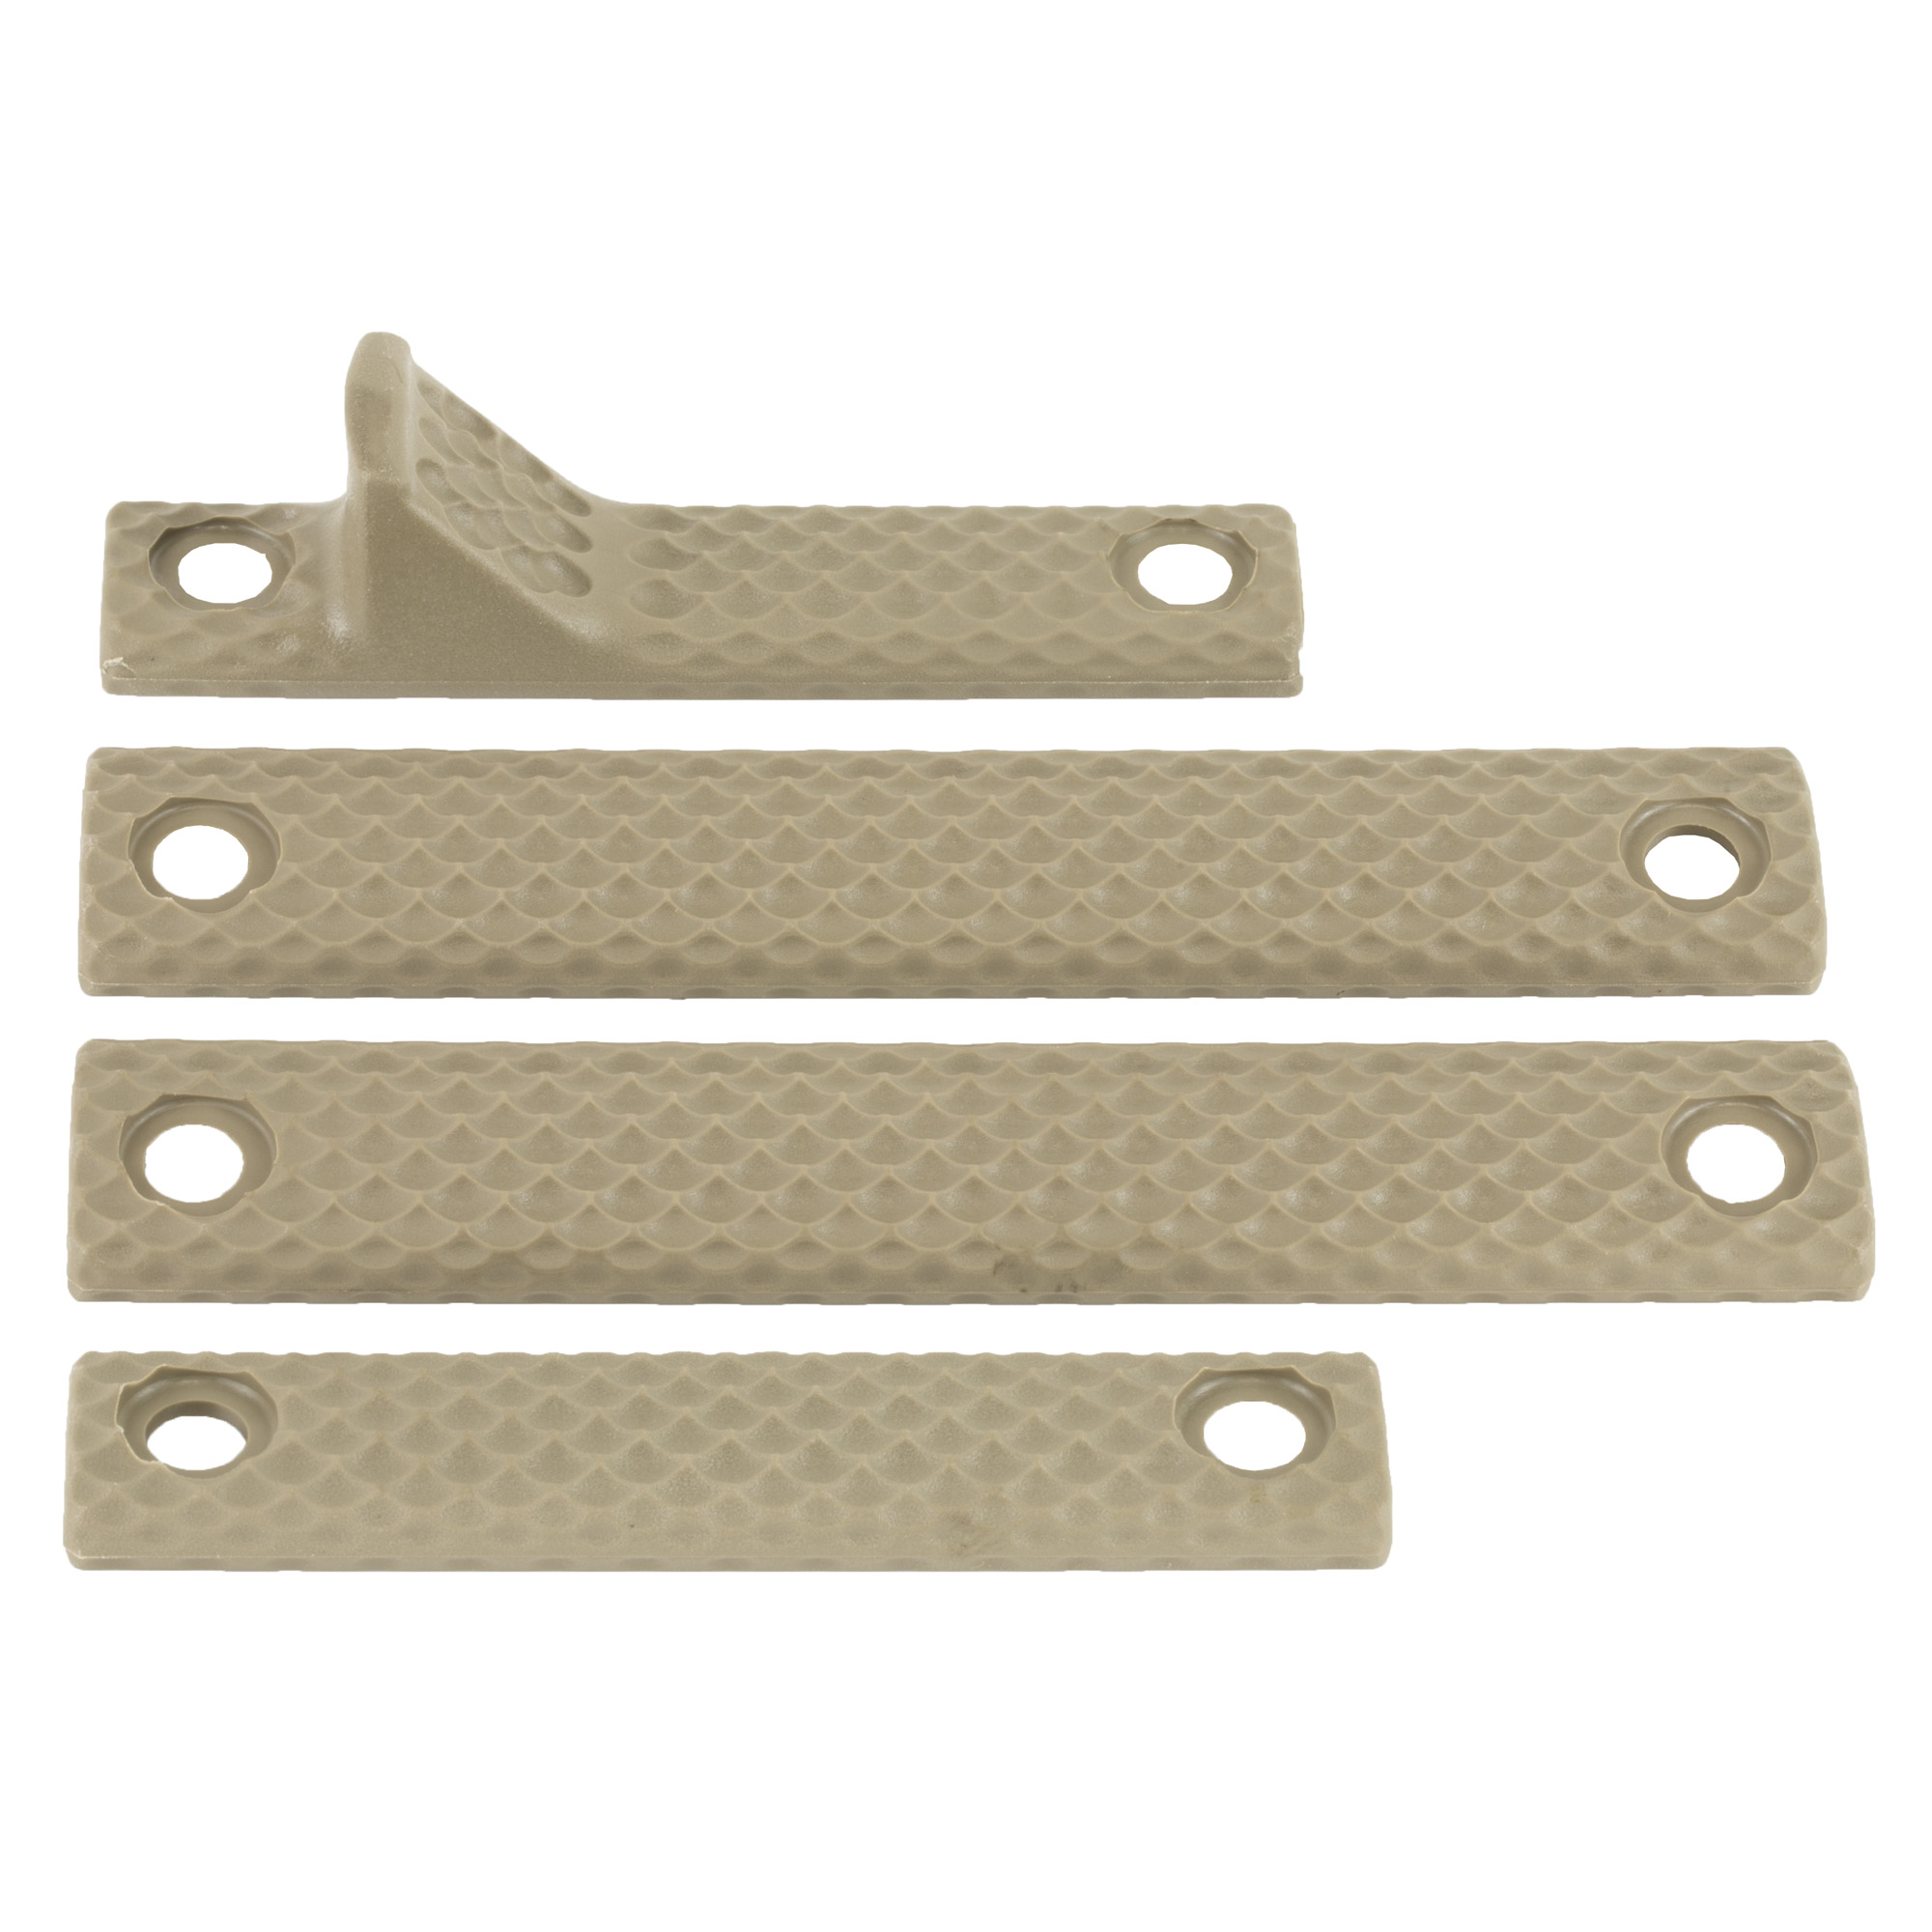 """Knights Armament Co.'s URX 3.1 Long Rail Panel Kit contains a basic assortment of protective panels that bolt directly to a Knight's Armament URX III or 3.1 handguard. The lightweight polymer panels are textured for a more secure grip"""" and help to insulate the support hand from barrel heat after prolonged strings of fire. Kit Contents:(1x) 4"""" Handstop Panel"""" (1x) 4"""" Slim Panel"""" (2x) 5.5"""" Standard Panels"""" (4x) Bottom Rail Nuts"""" (8x) Installation Screws."""